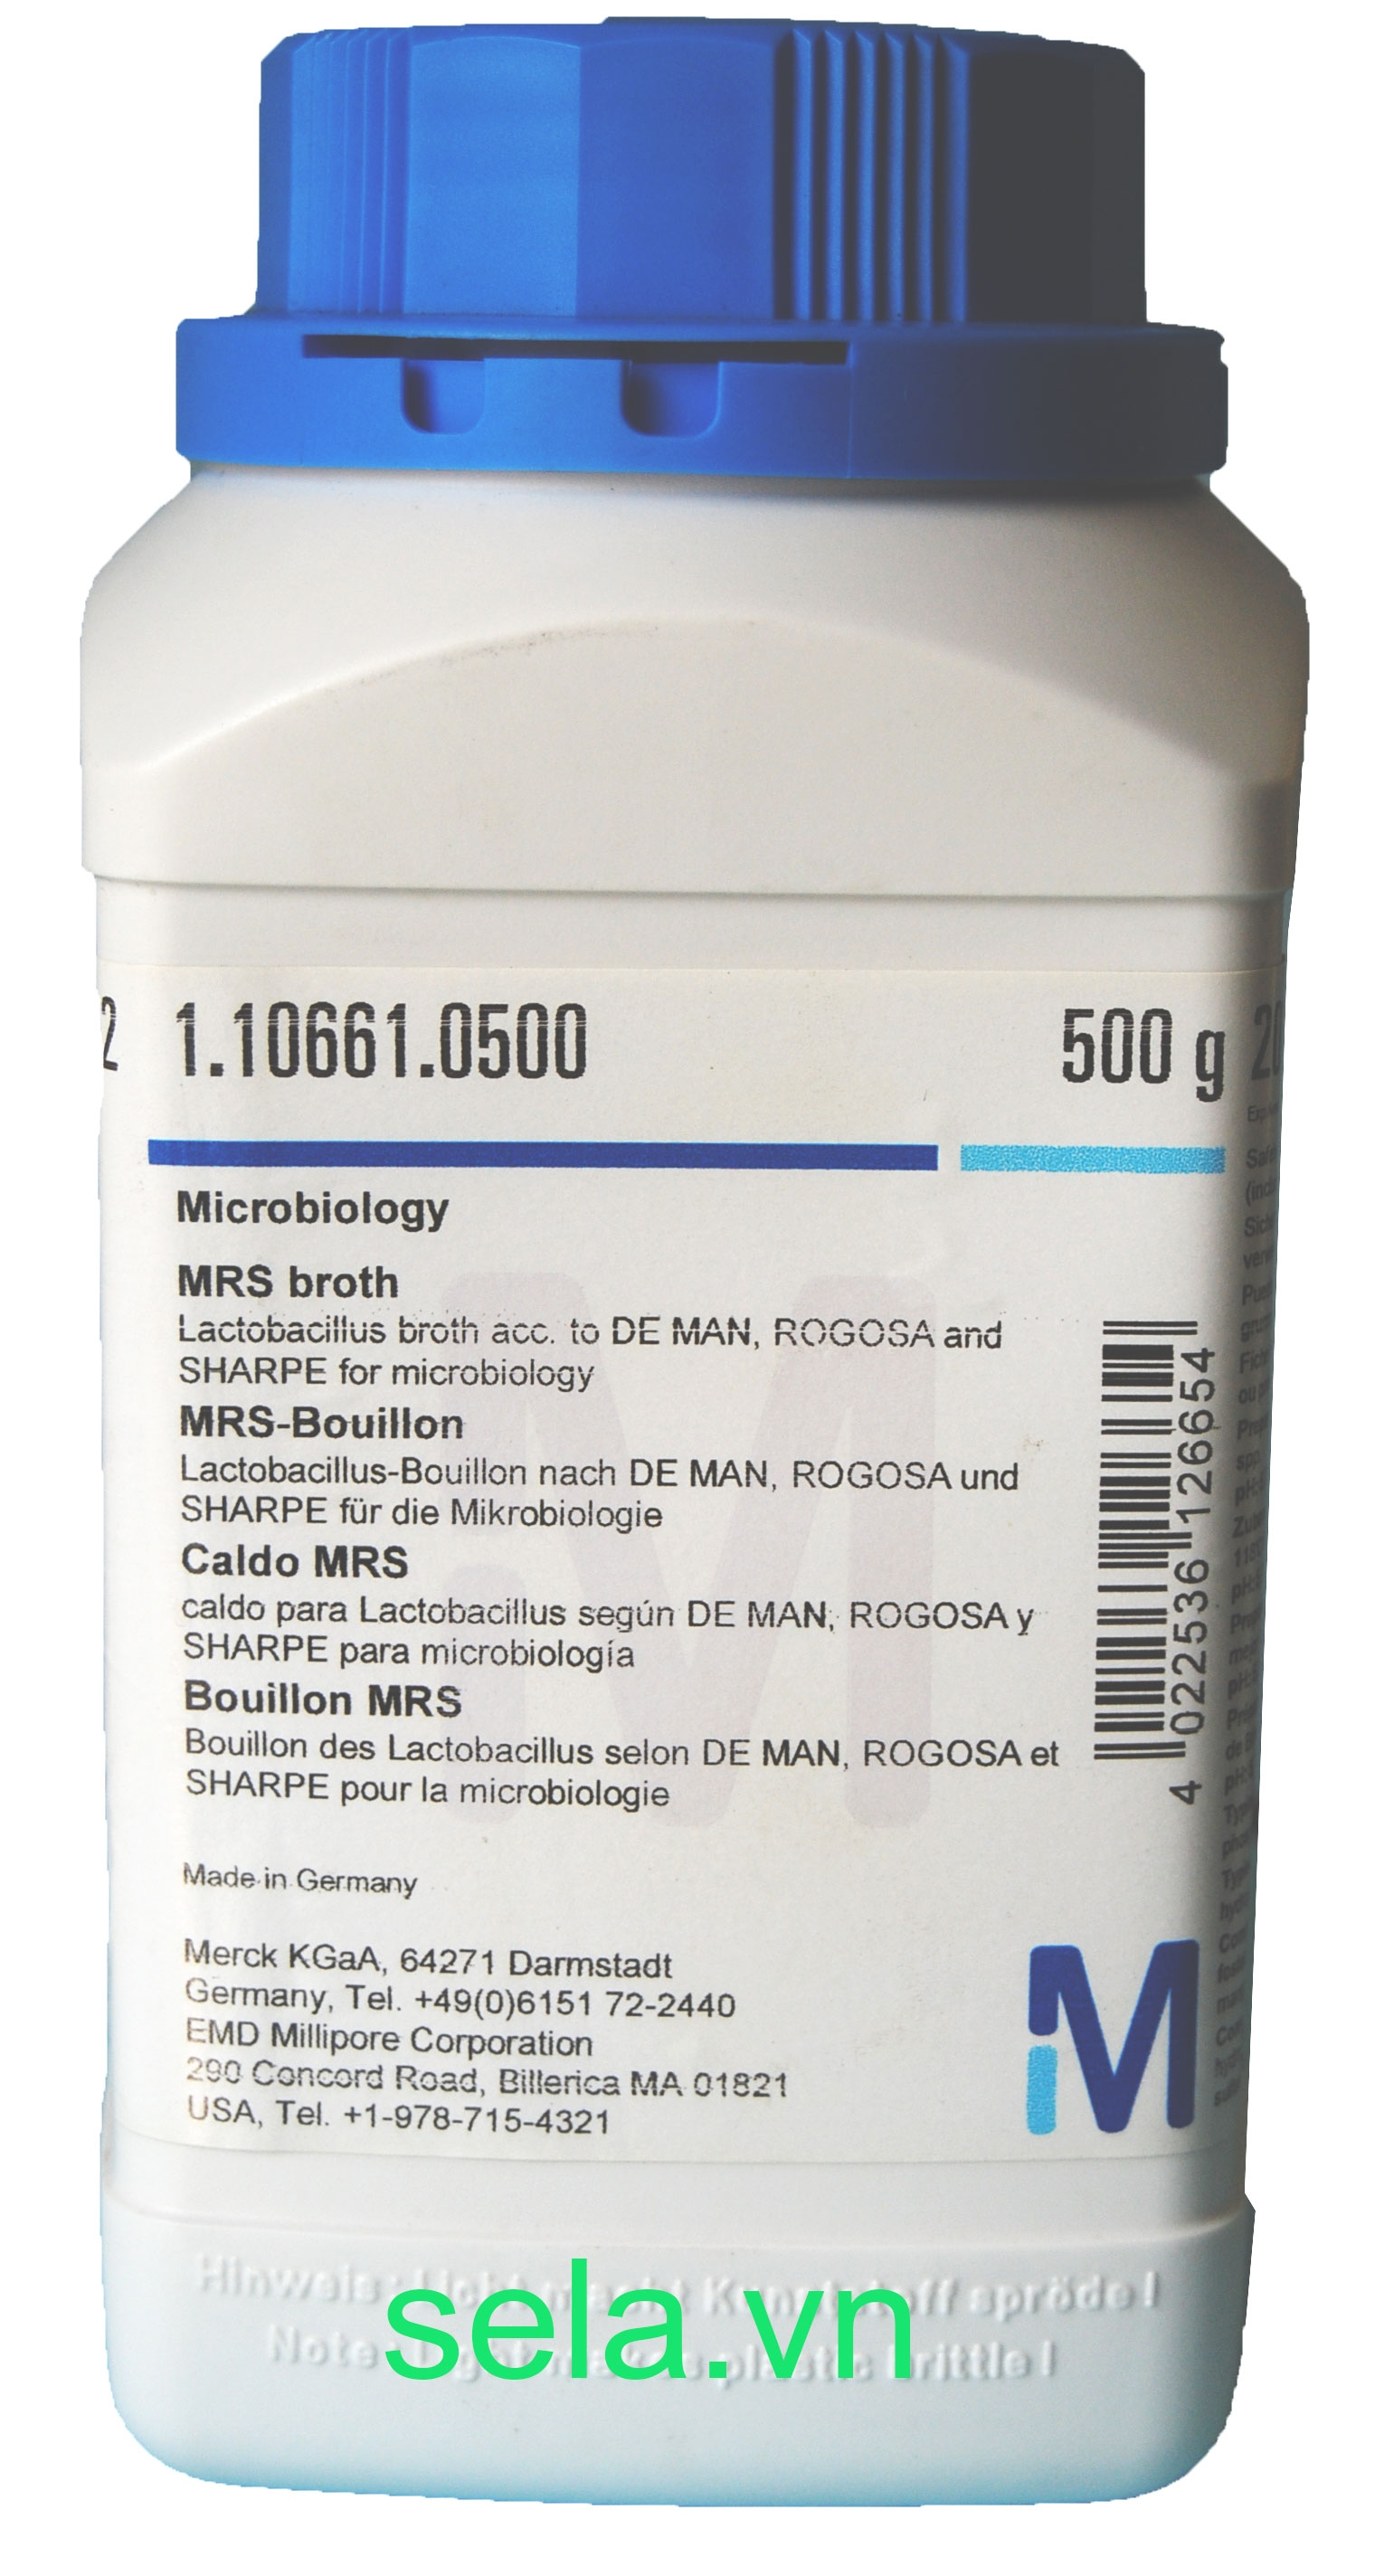 MRS broth Lactobacillus broth acc. to DE MAN, ROGOSA and SHARPE for microbiology